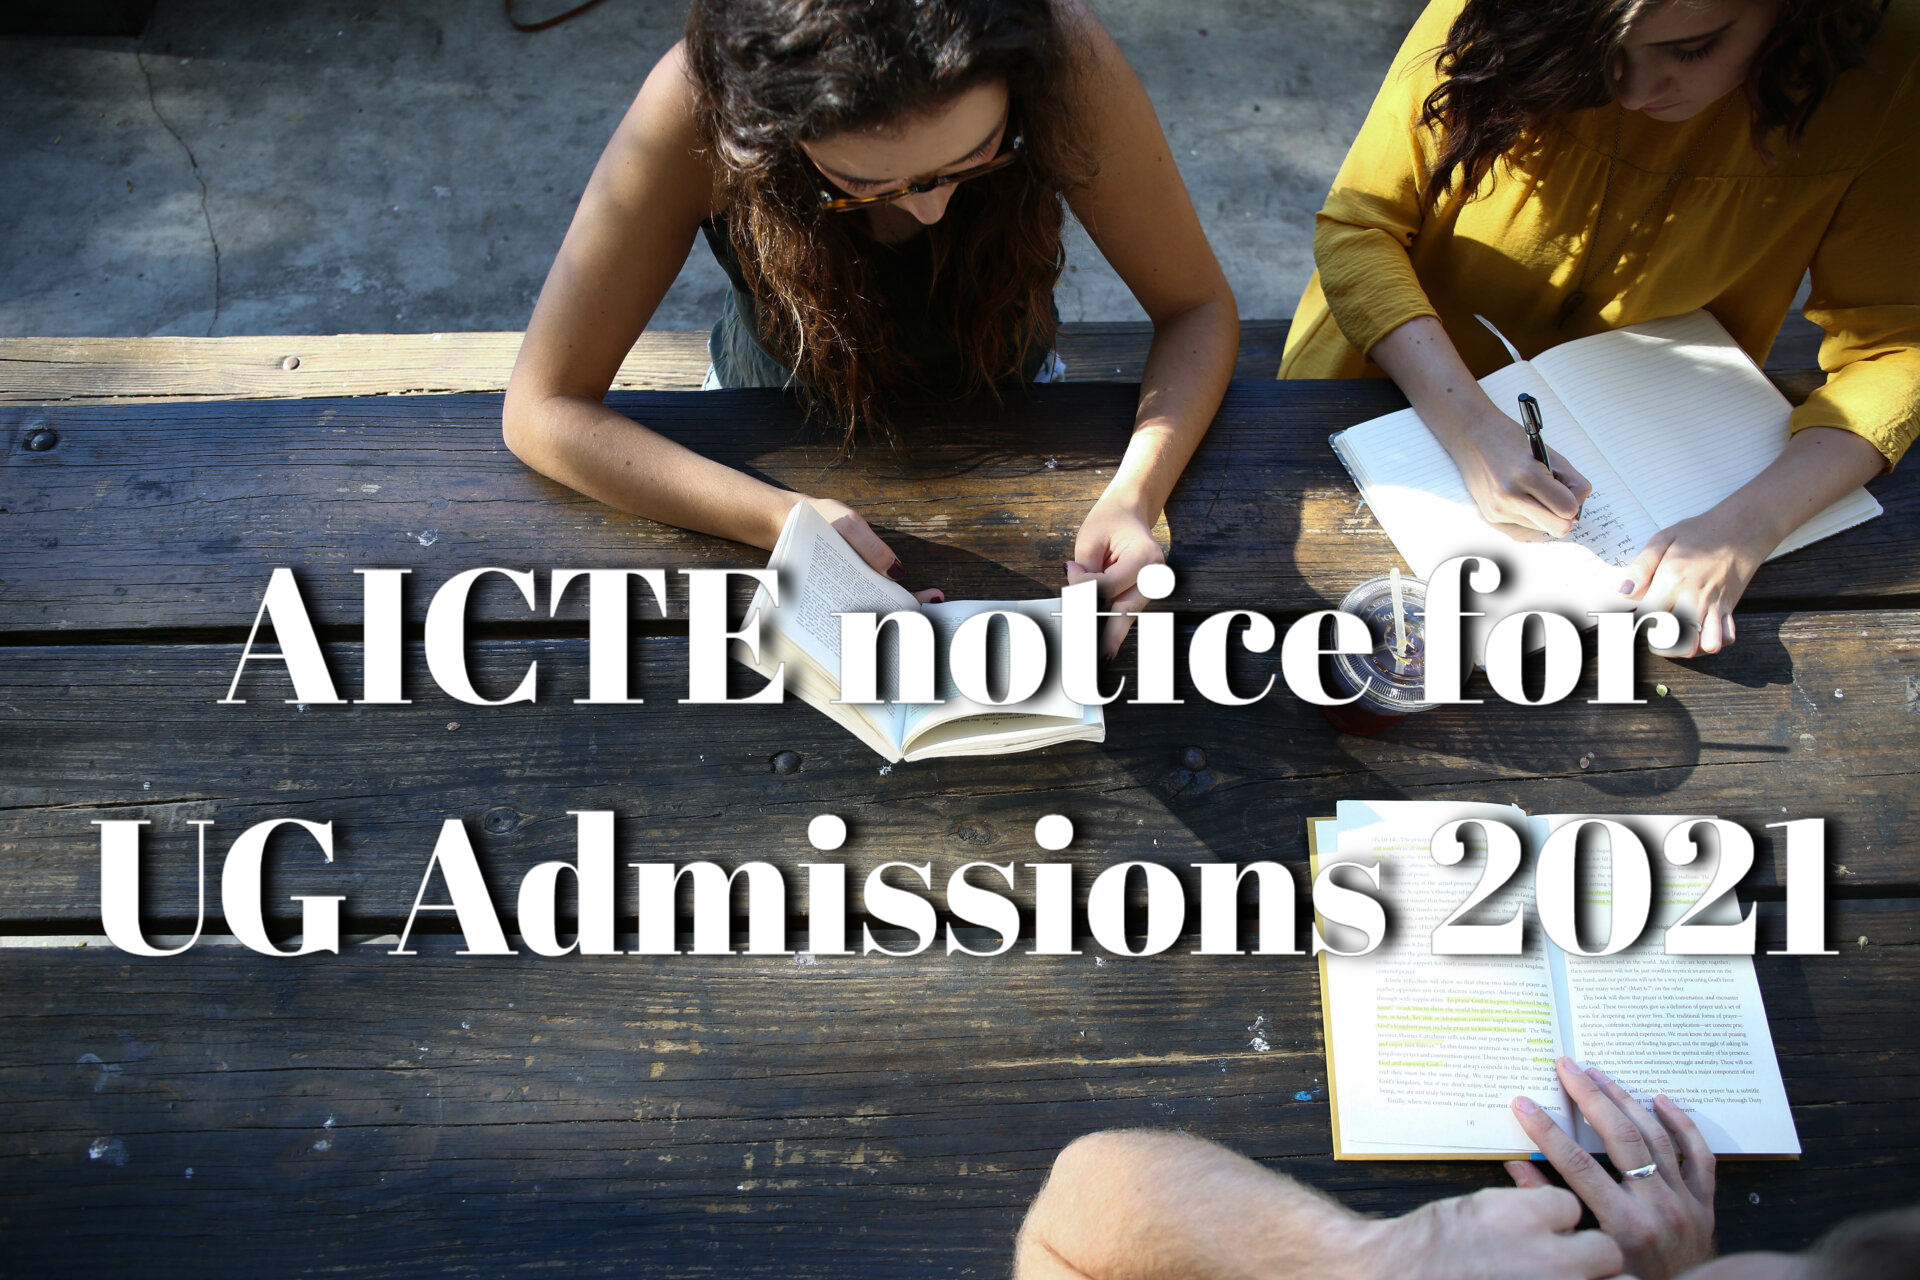 An important announcement on AICTE-India's website regarding UG Admissions 2021 is now available